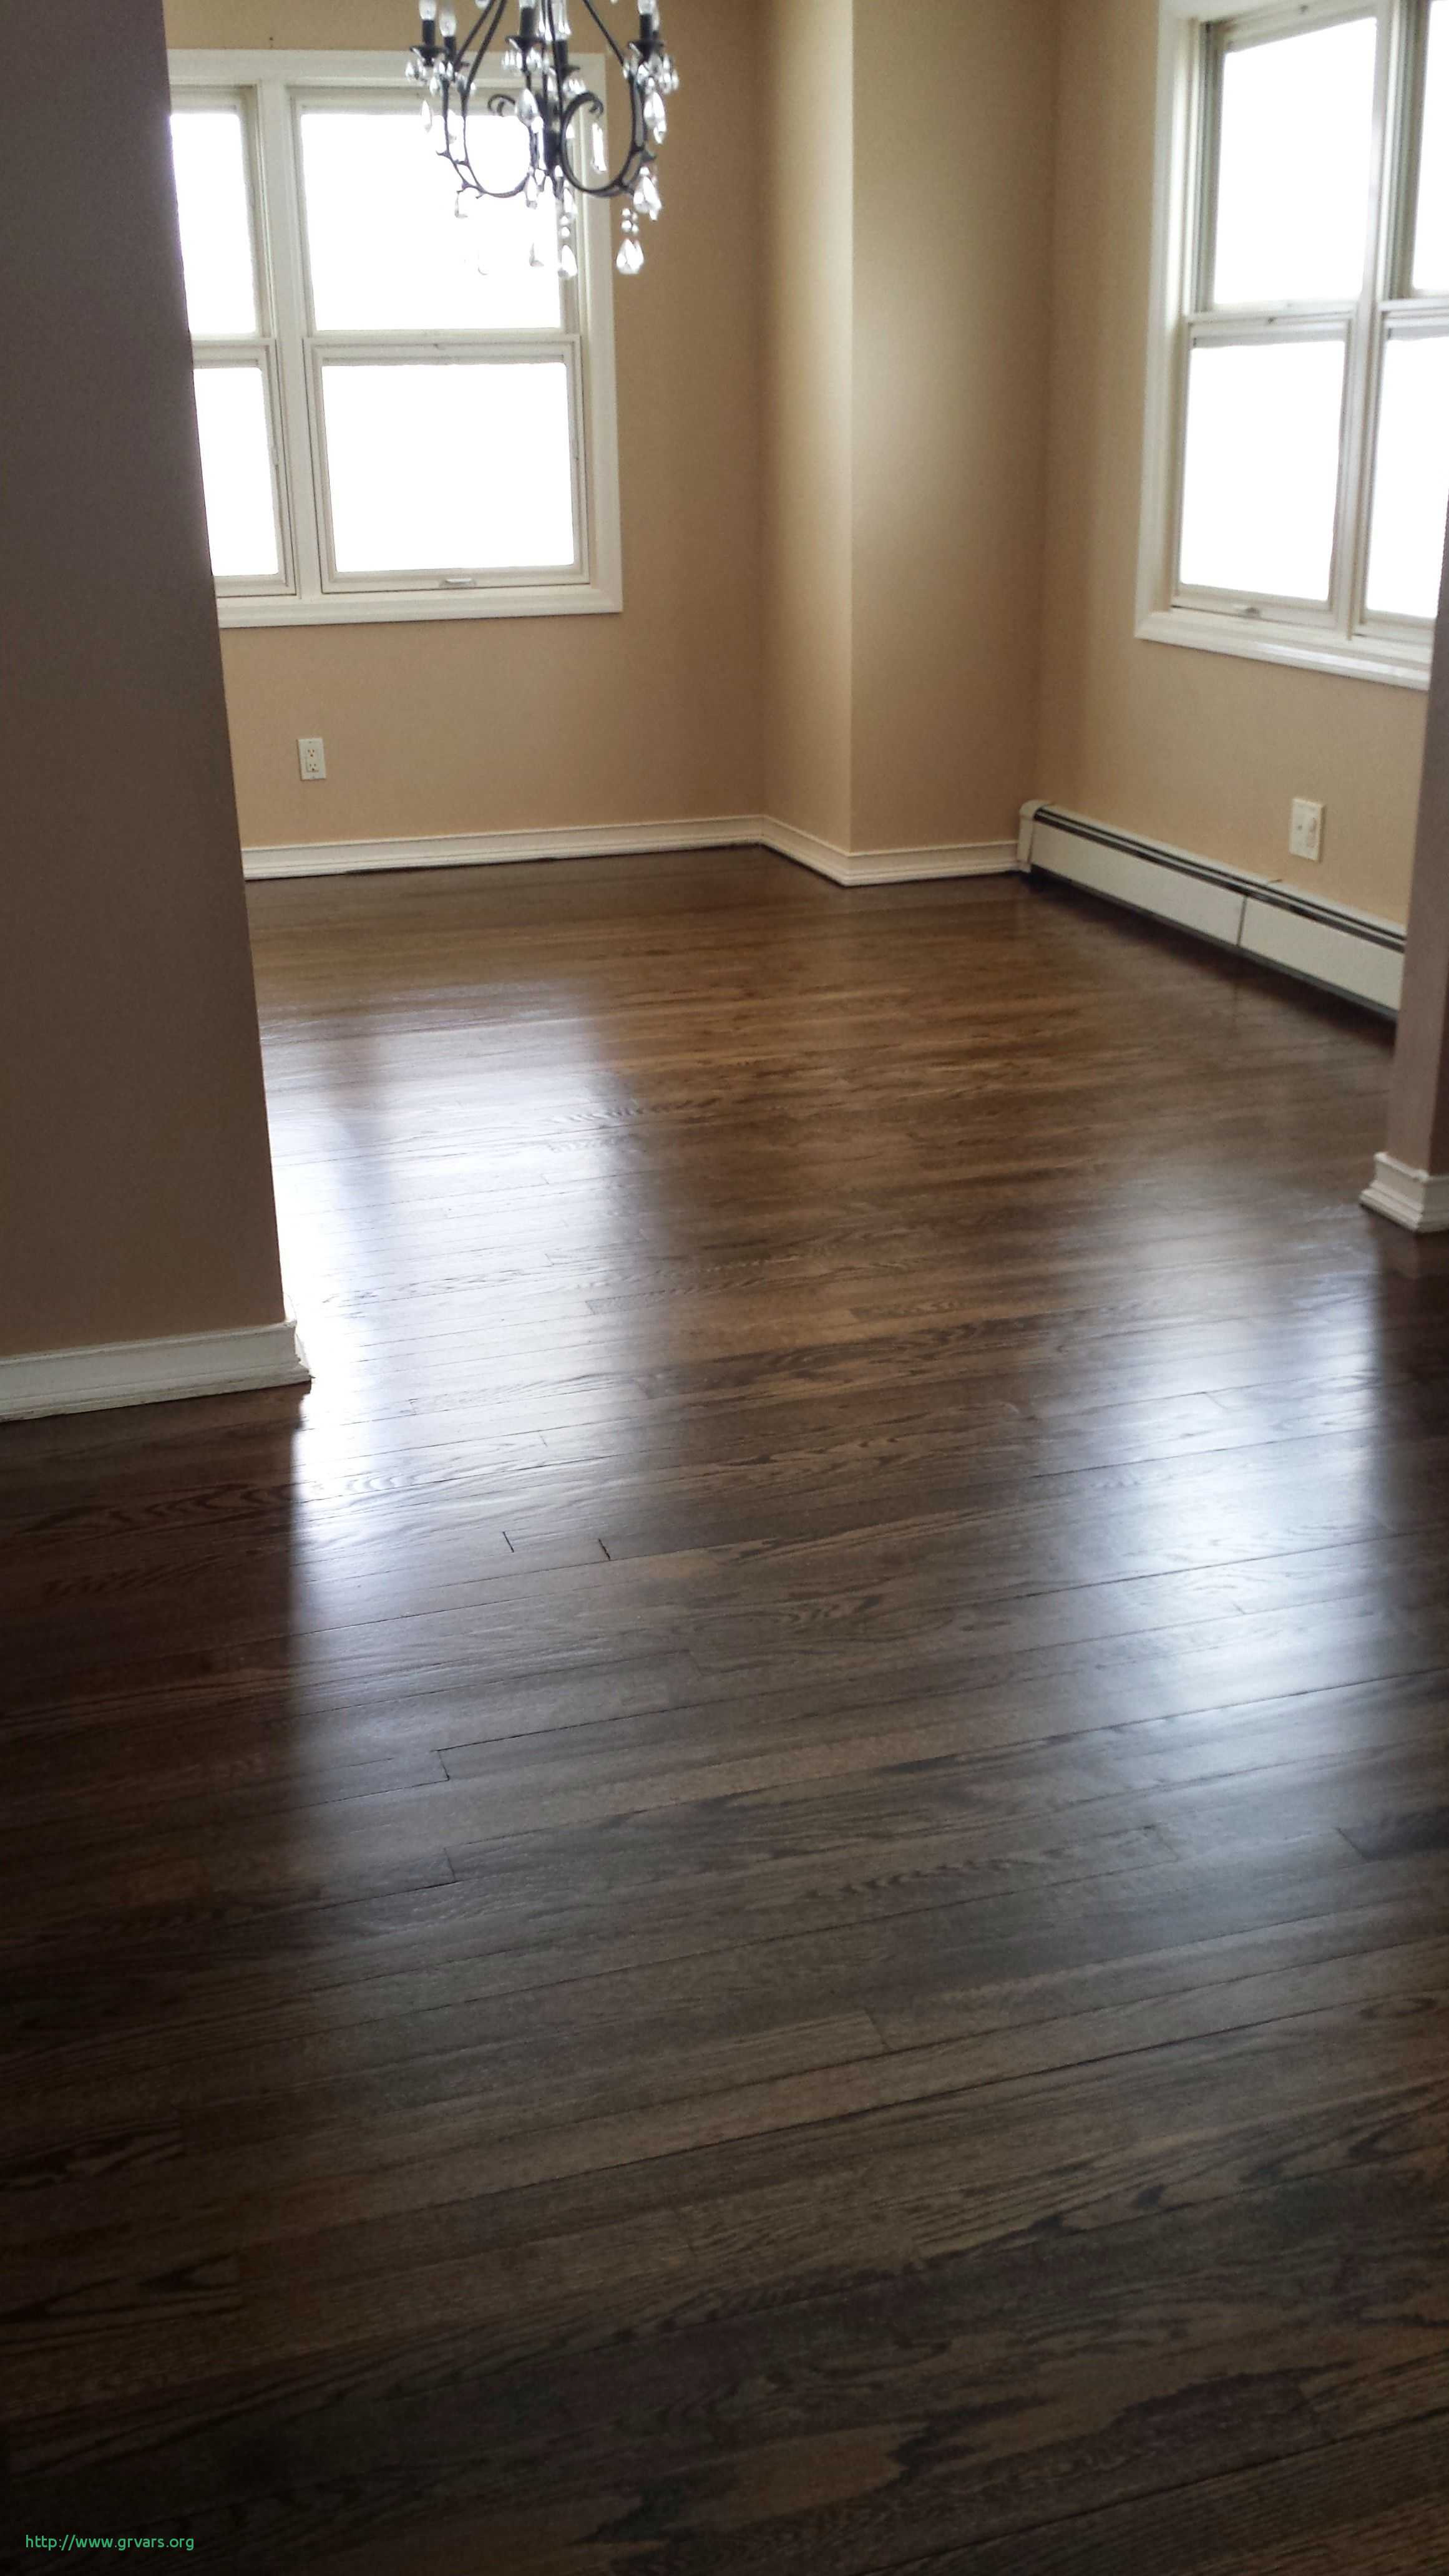 hardwood floor refinishing 2 or 3 coats of 16 meilleur de how to sand and stain hardwood floor ideas blog with regard to interior amusing refinishingod floors diy network refinish parquet without sanding buffing with pet stains refinishing hardwood